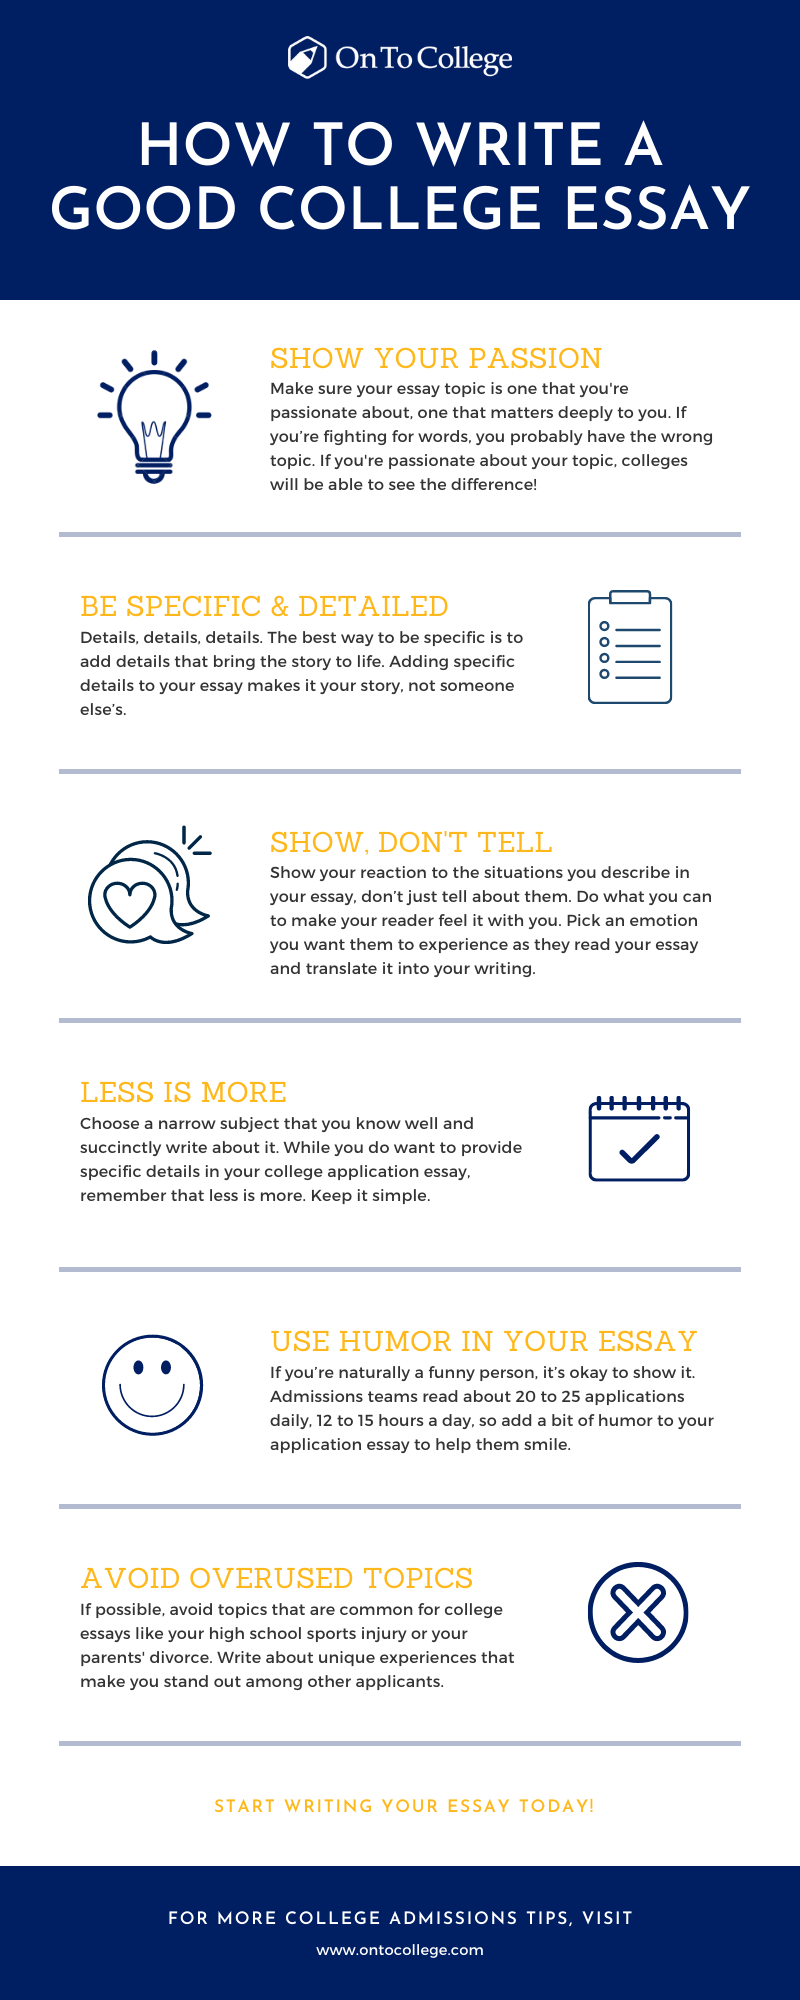 Write a College Essay Infographic